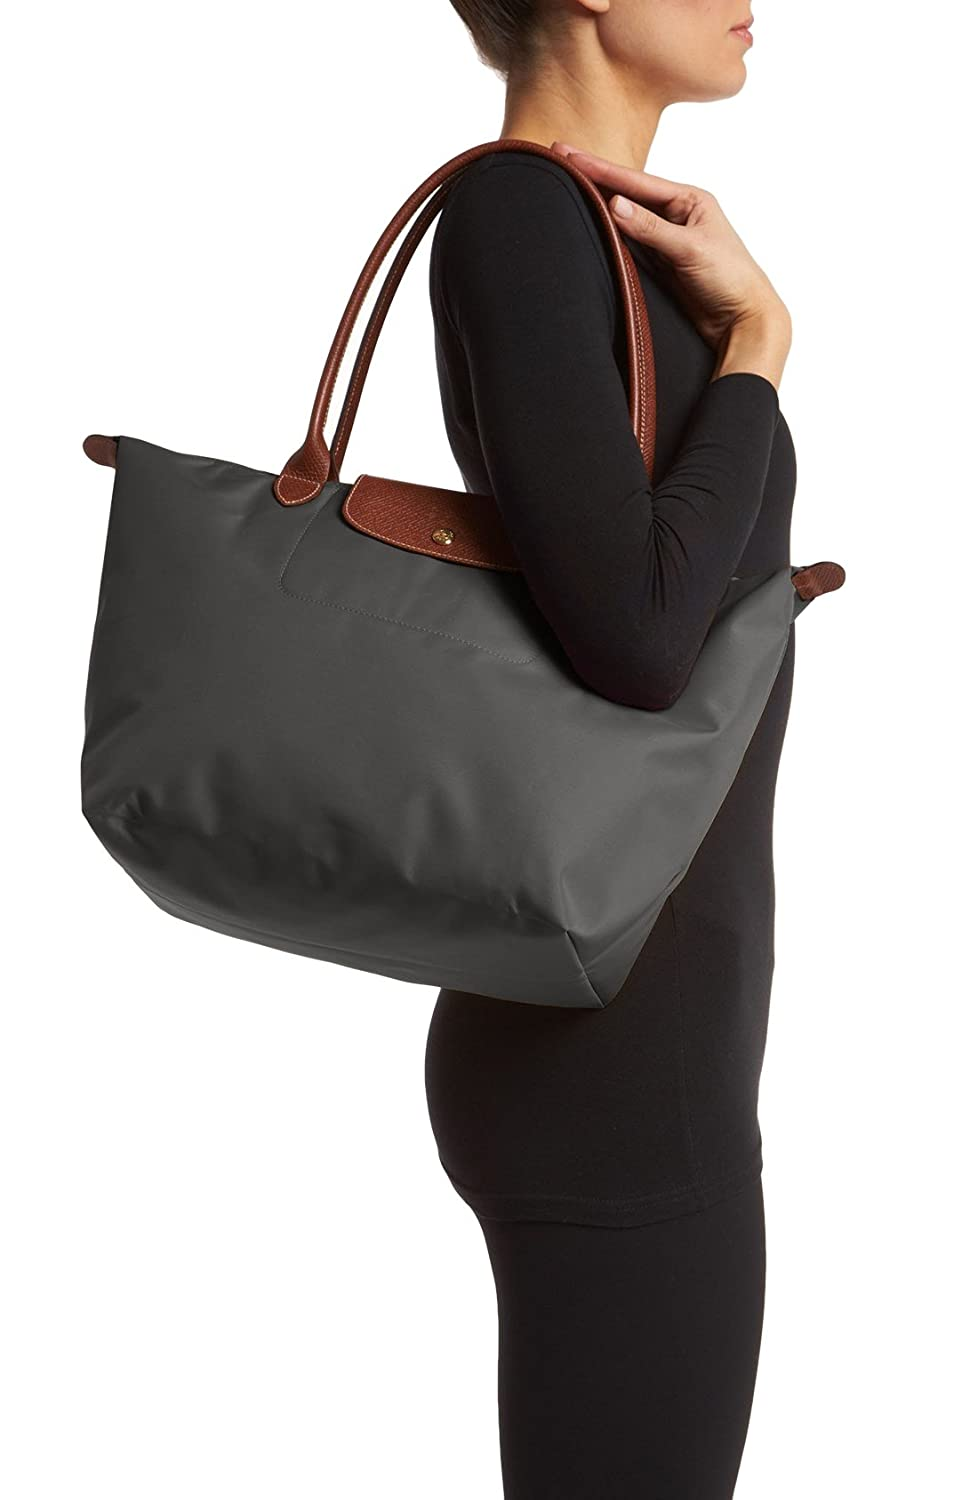 Longchamp Le Pliage Large Tote Shoulder Bag Gunmetal Grey Amazon Lc030 Longchample Medium The City Shoes Bags